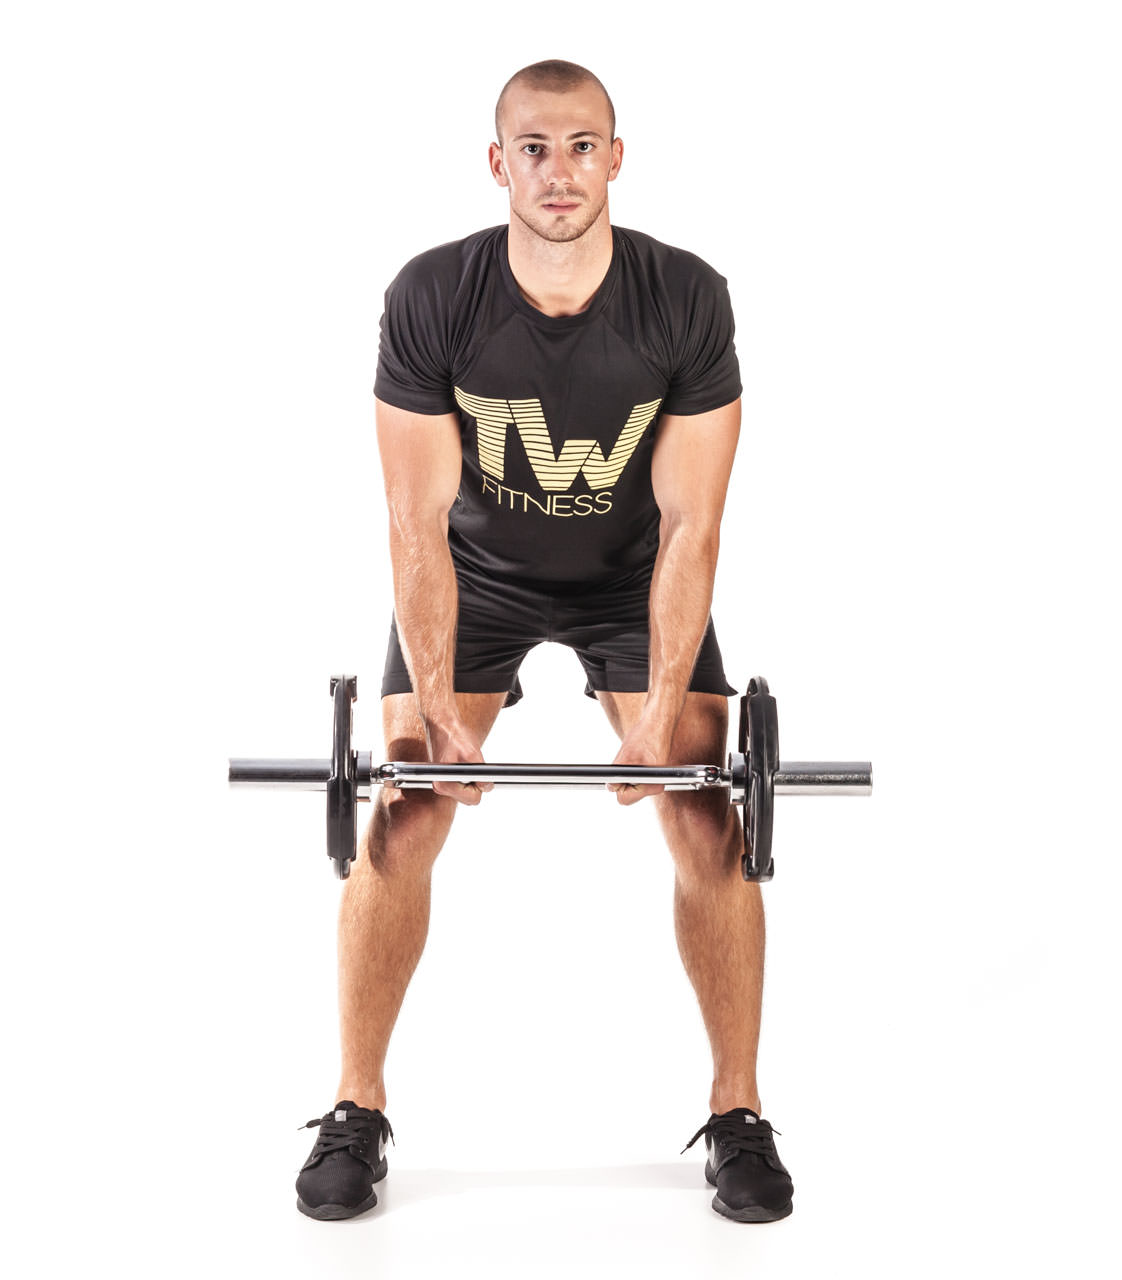 Bent Over Barbell Row frame #3